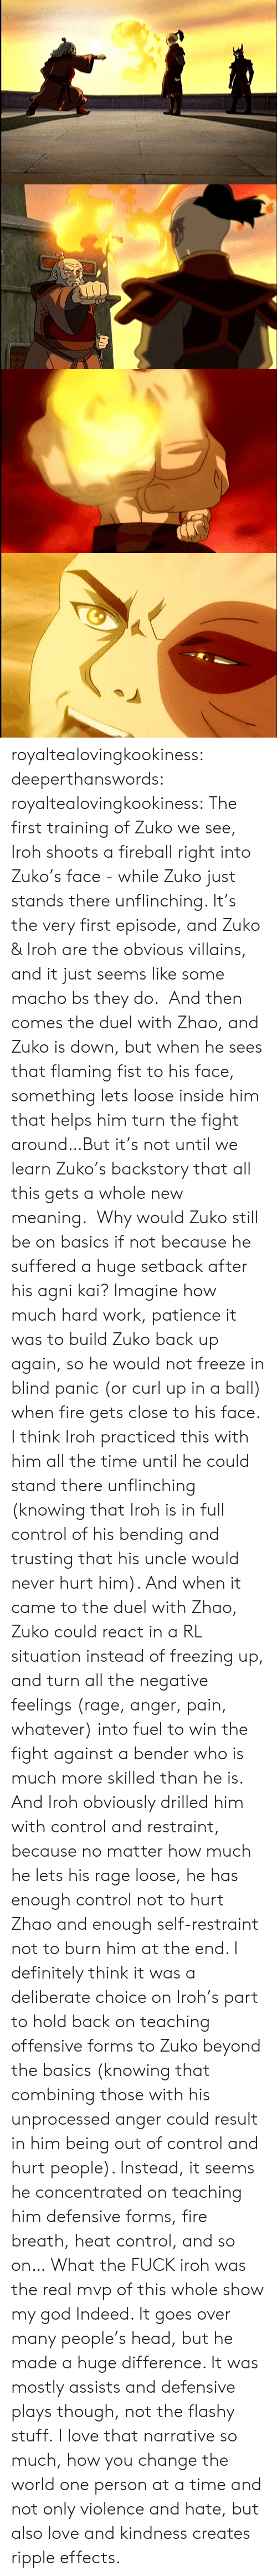 rage: royaltealovingkookiness: deeperthanswords:  royaltealovingkookiness:   The first training of Zuko we see, Iroh shoots a fireball right into Zuko's face - while Zuko just stands there unflinching. It's the very first episode, and Zuko & Iroh are the obvious villains, and it just seems like some macho bs they do.  And then comes the duel with Zhao, and Zuko is down, but when he sees that flaming fist to his face, something lets loose inside him that helps him turn the fight around…But it's not until we learn Zuko's backstory that all this gets a whole new meaning.  Why would Zuko still be on basics if not because he suffered a huge setback after his agni kai? Imagine how much hard work, patience it was to build Zuko back up again, so he would not freeze in blind panic (or curl up in a ball) when fire gets close to his face. I think Iroh practiced this with him all the time until he could stand there unflinching (knowing that Iroh is in full control of his bending and trusting that his uncle would never hurt him). And when it came to the duel with Zhao, Zuko could react in a RL situation instead of freezing up, and turn all the negative feelings (rage, anger, pain, whatever) into fuel to win the fight against a bender who is much more skilled than he is.  And Iroh obviously drilled him with control and restraint, because no matter how much he lets his rage loose, he has enough control not to hurt Zhao and enough self-restraint not to burn him at the end. I definitely think it was a deliberate choice on Iroh's part to hold back on teaching offensive forms to Zuko beyond the basics (knowing that combining those with his unprocessed anger could result in him being out of control and hurt people). Instead, it seems he concentrated on teaching him defensive forms, fire breath, heat control, and so on…   What the FUCK iroh was the real mvp of this whole show my god  Indeed. It goes over many people's head, but he made a huge difference. It was mostly assists and defensive plays though, not the flashy stuff. I love that narrative so much, how you change the world one person at a time and not only violence and hate, but also love and kindness creates ripple effects.